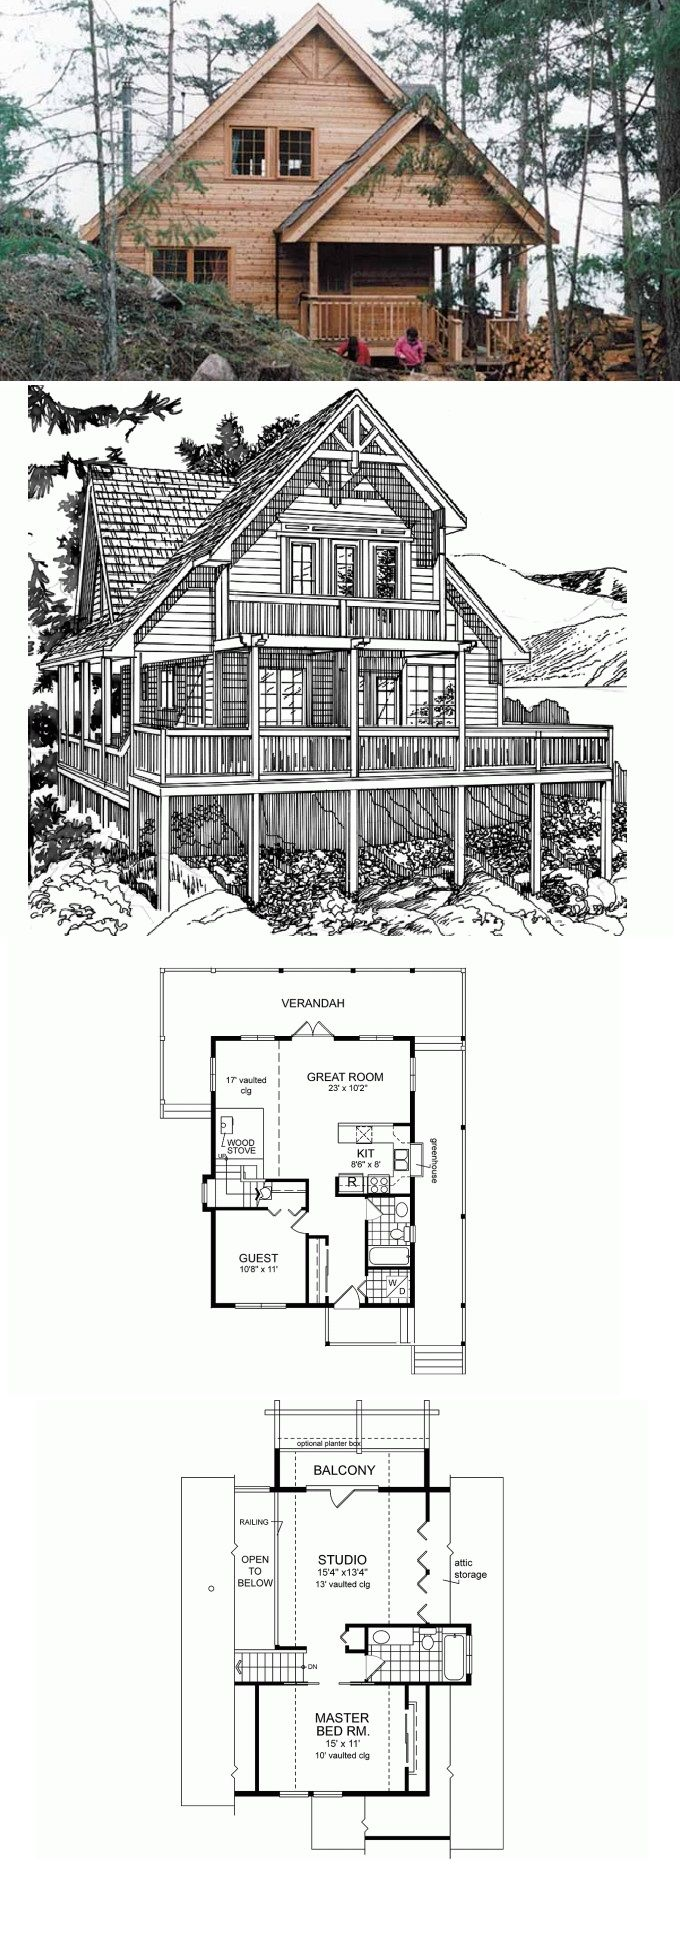 172 best house plans images on pinterest magnolia homes eplans cottage house plan rear view orientation 1333 square feet and 2 bedrooms from eplans house plan code